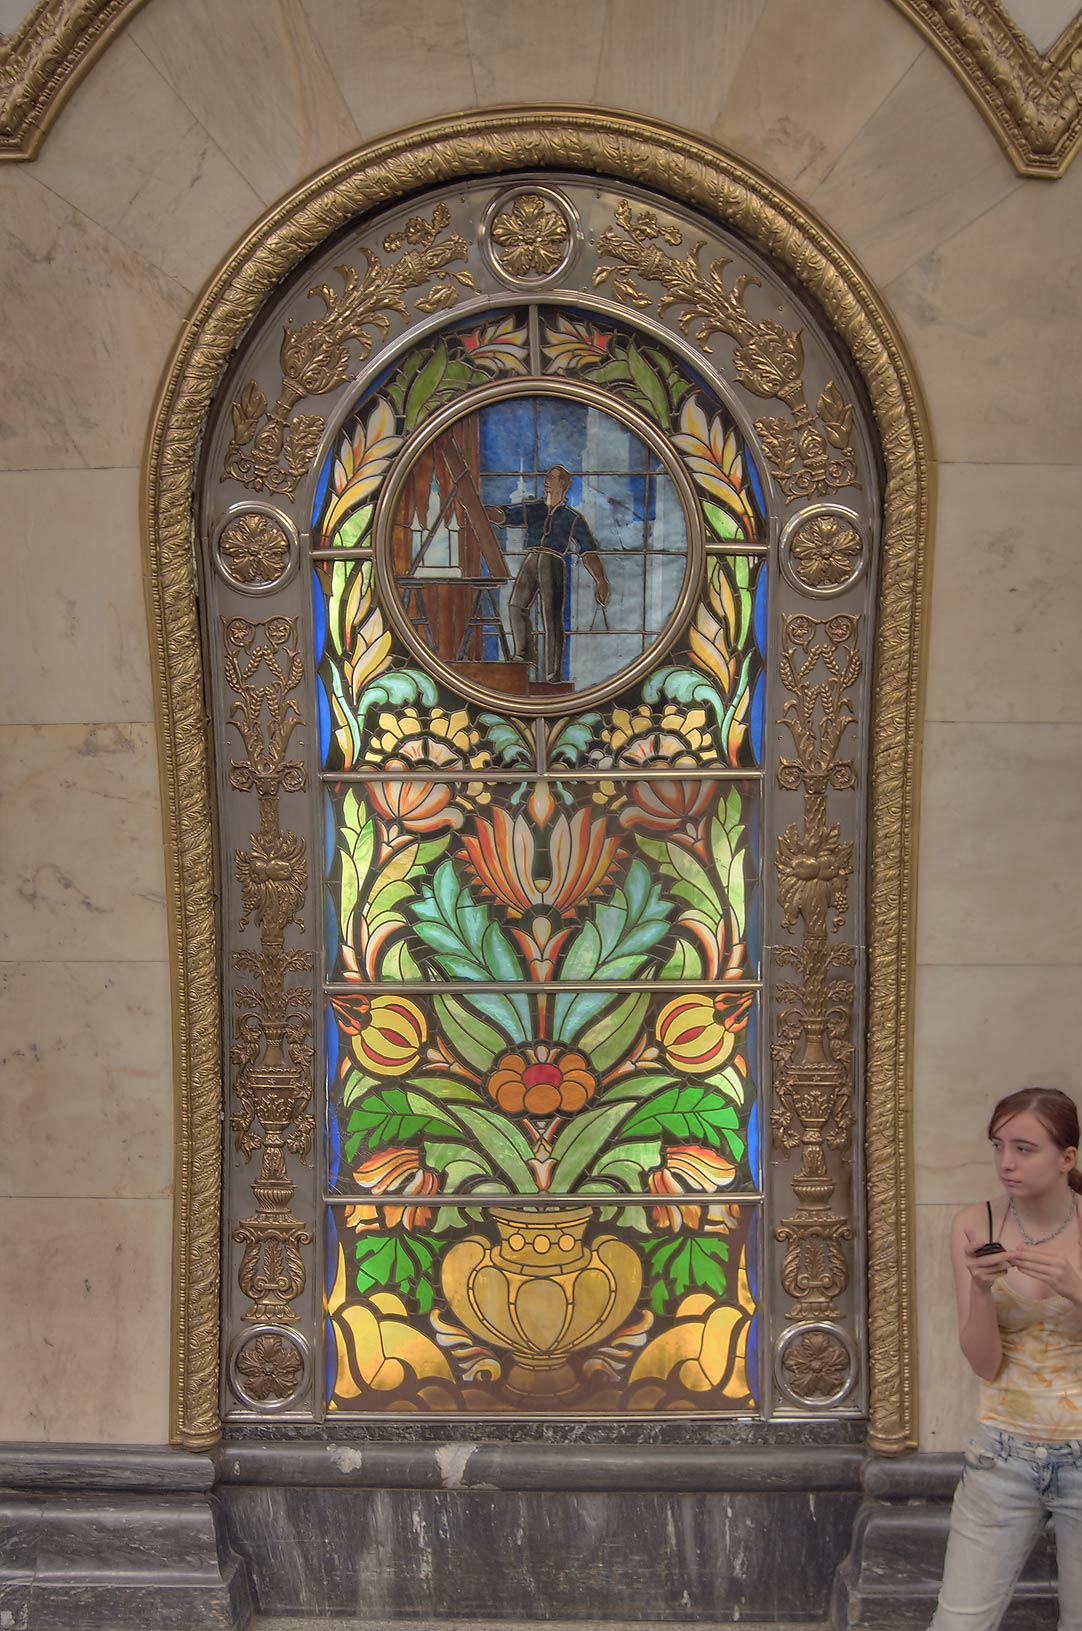 Stained glass panel in Novoslobodskaya Metro (subway) station. Moscow, Russia